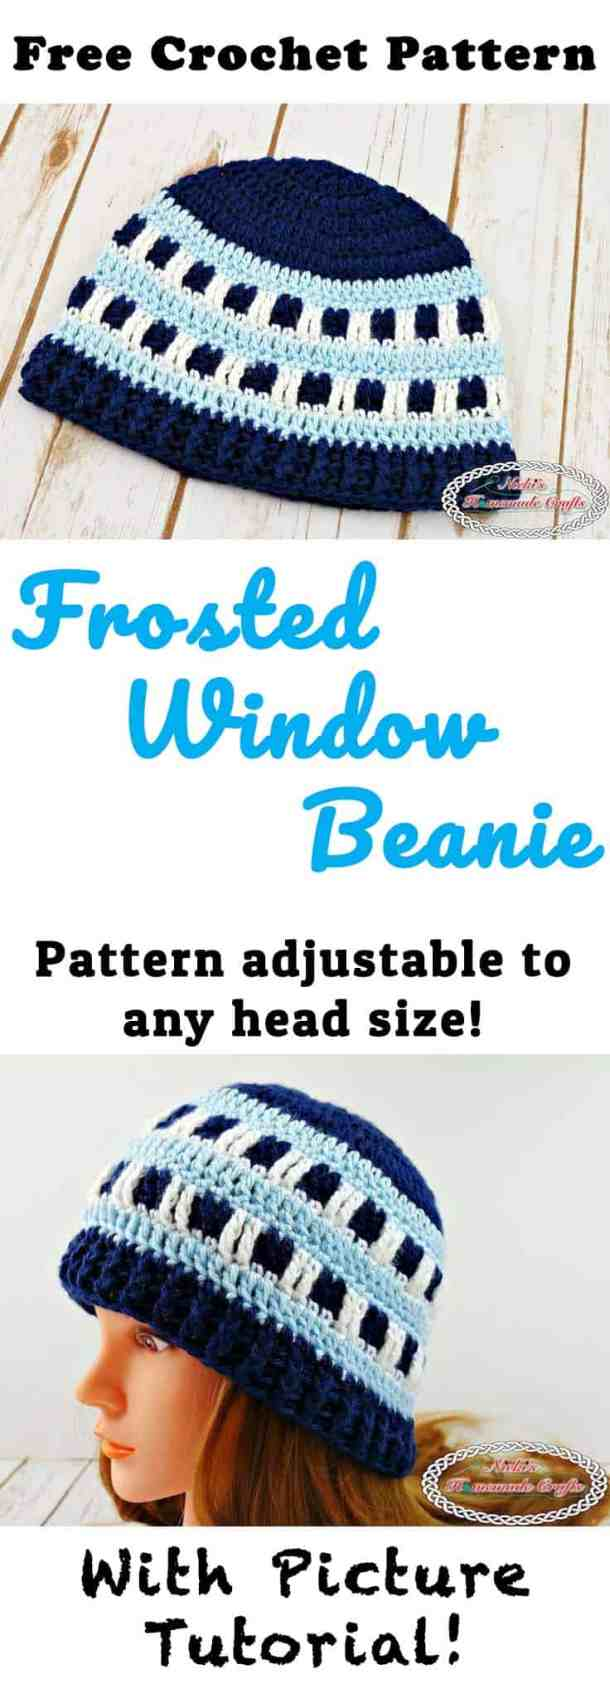 Frosted Window Beanie - Free Crochet Pattern by Nicki's Homemade Crafts #freecrochetpattern #crochet #frosted #frosty #window #beanie #hat #blue #head